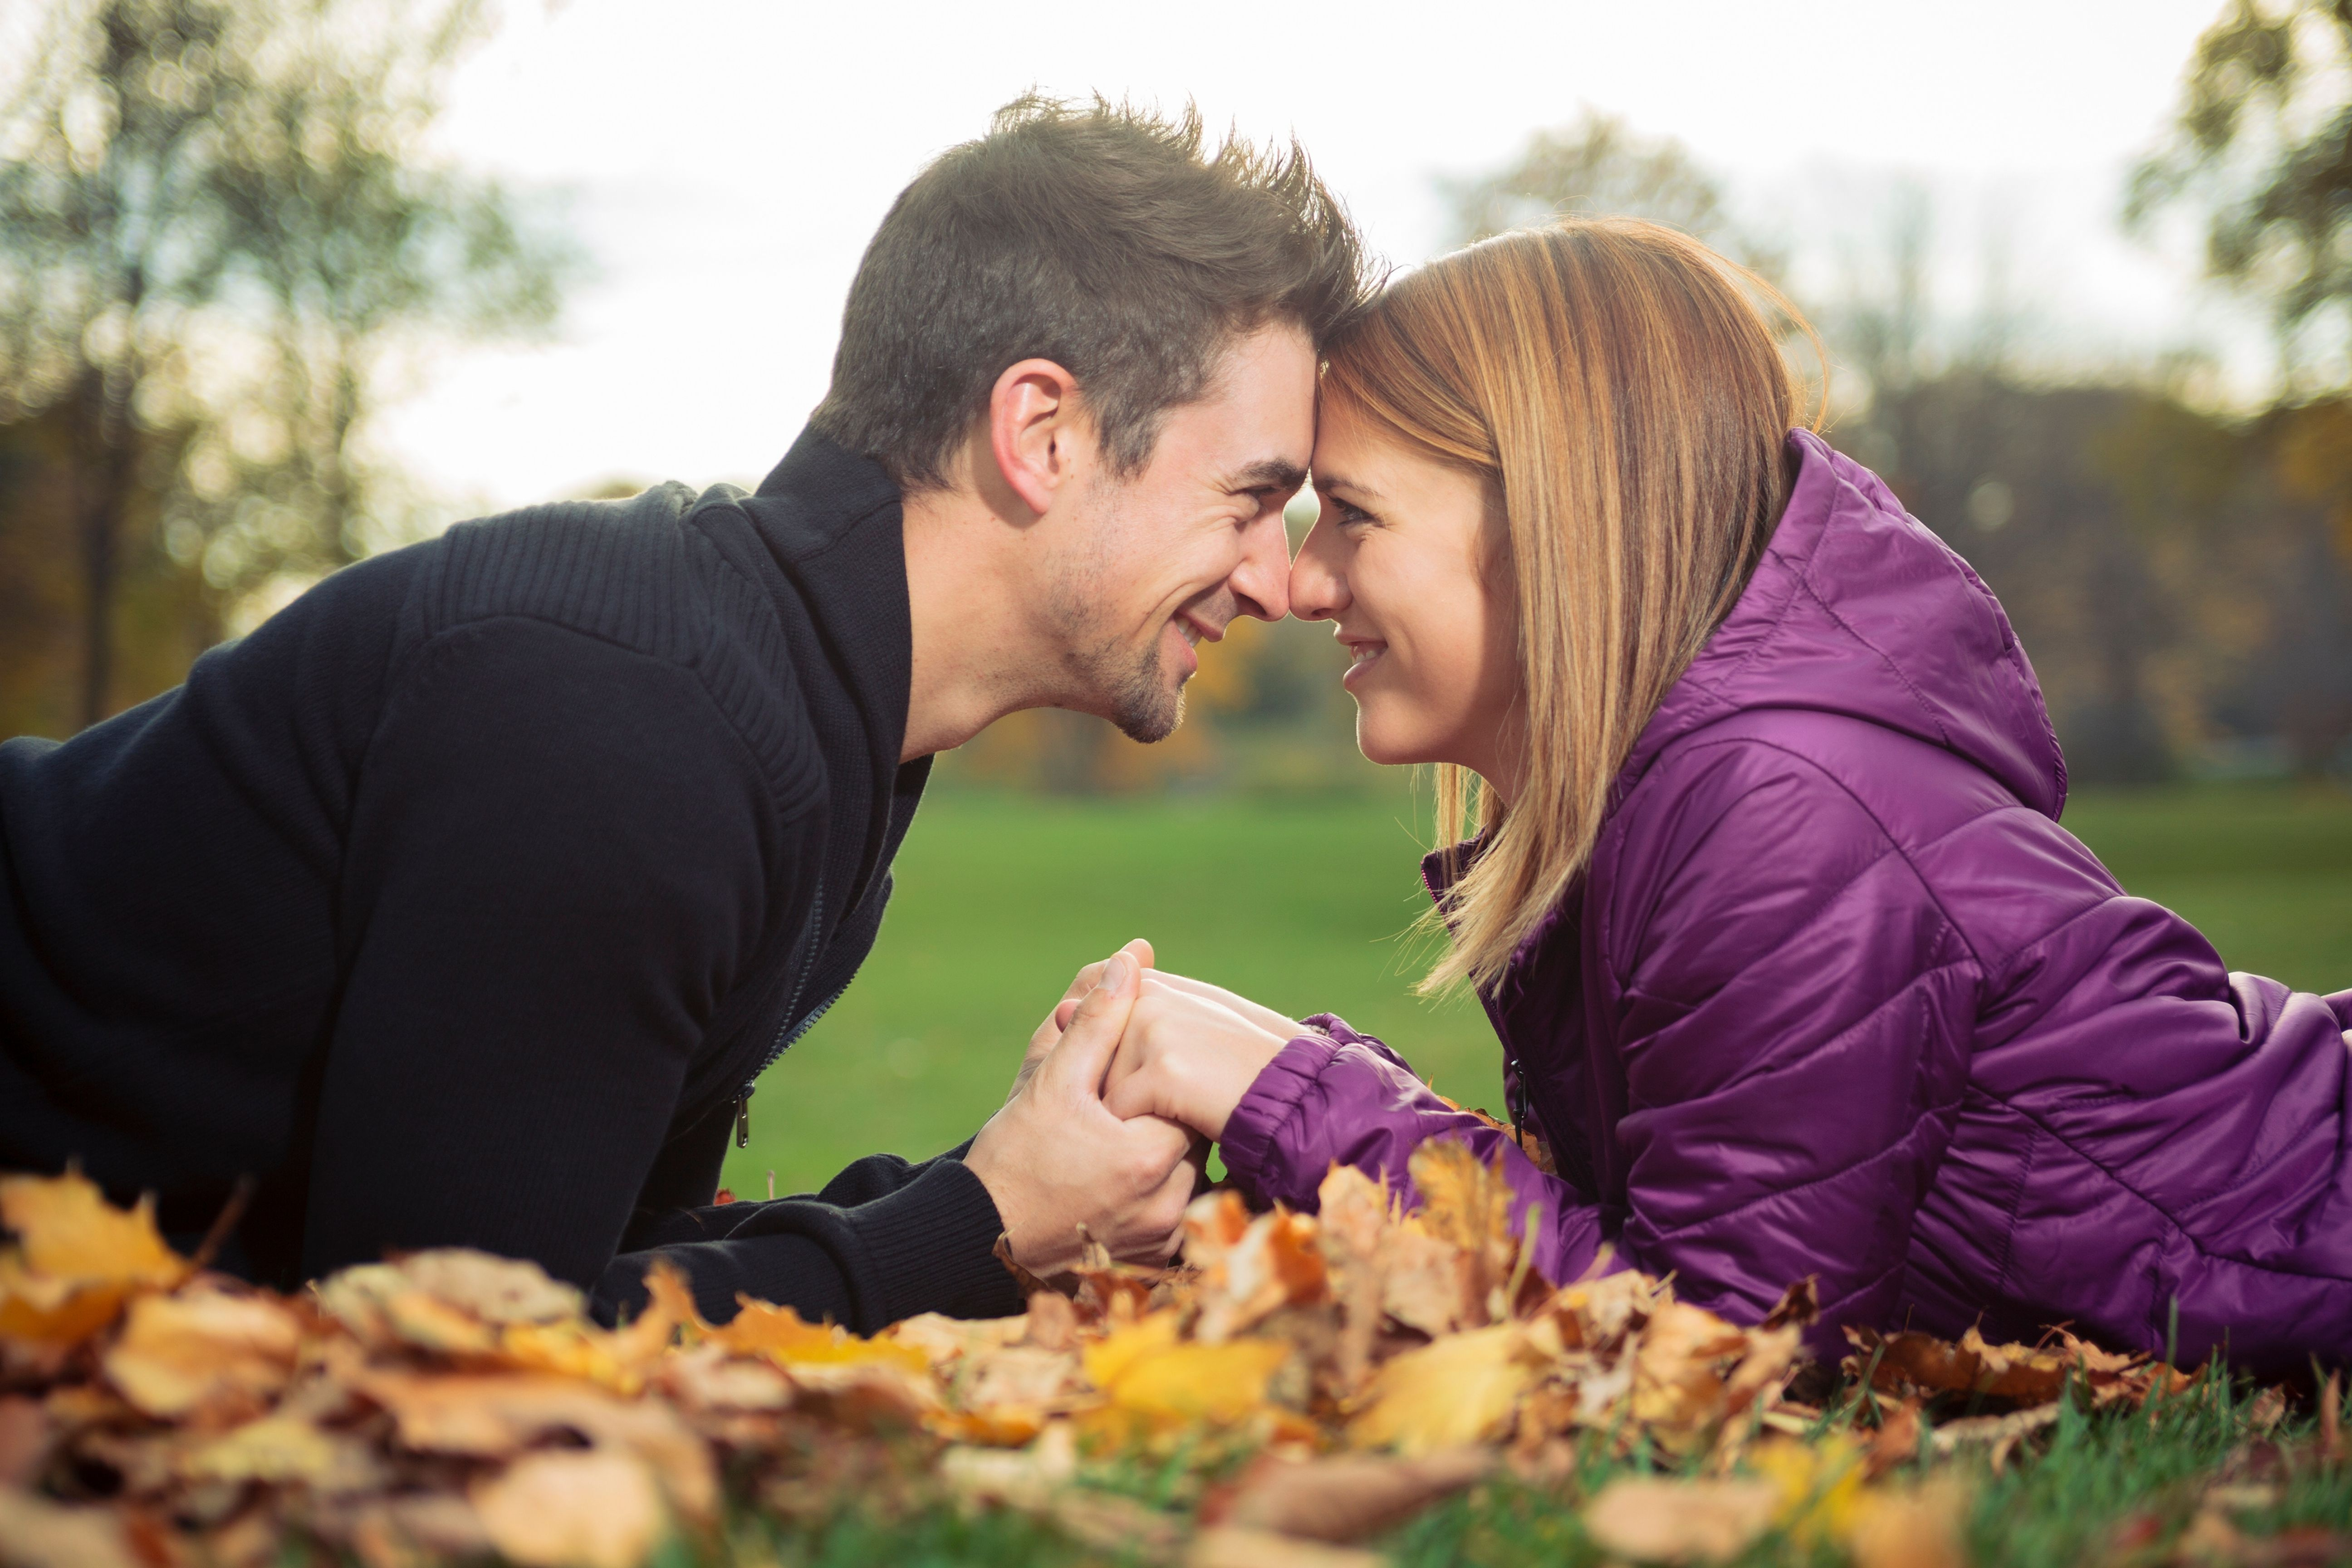 Sweet Fall Photoshoot Ideas For Couples